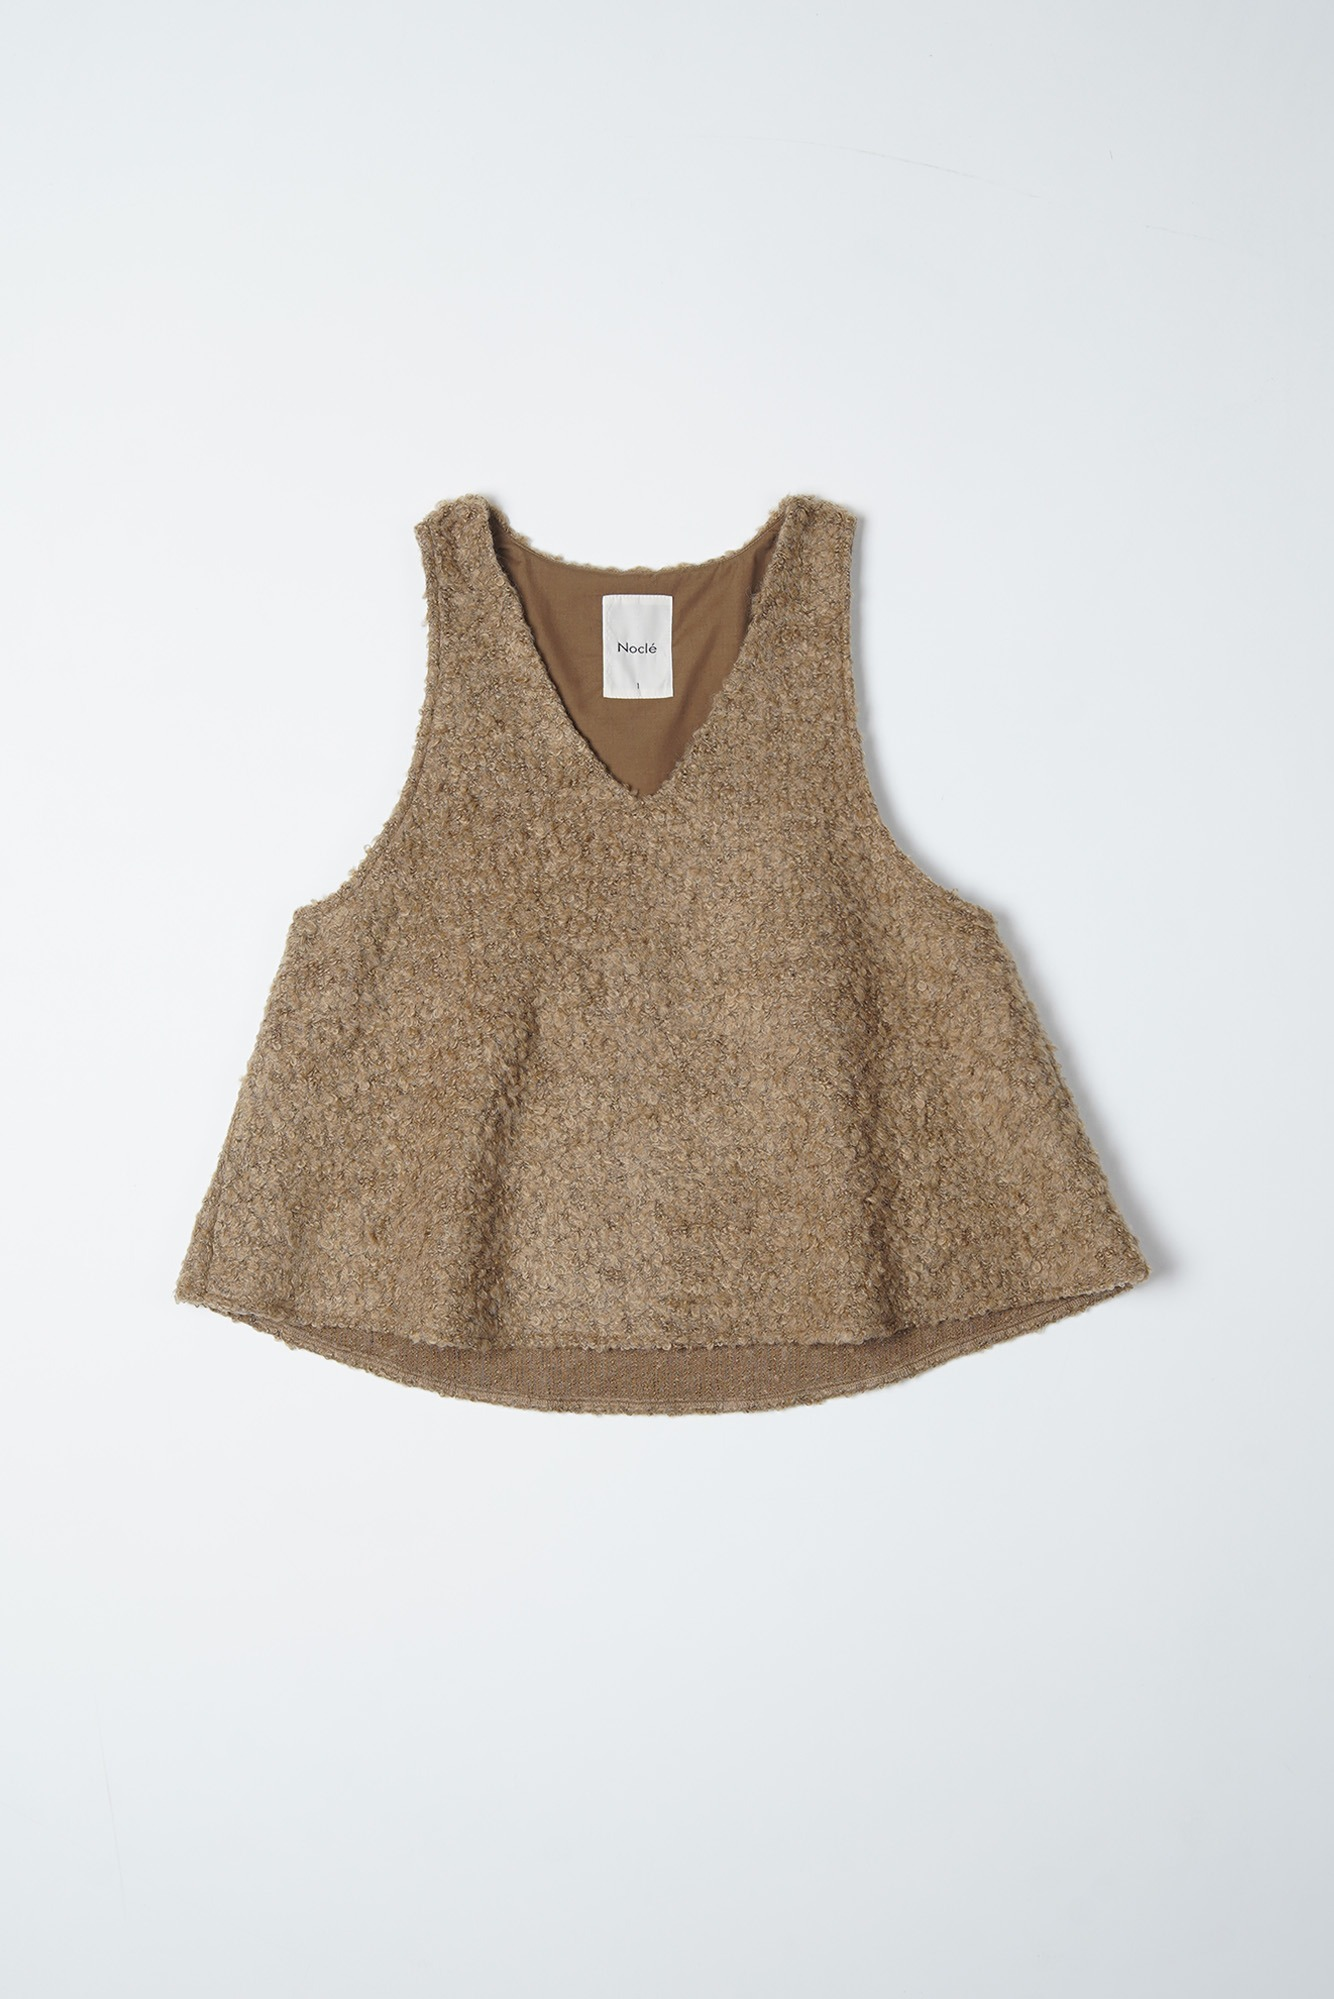 "Noclé Loop Yarn Wool V Neck Vest ""Beige"""